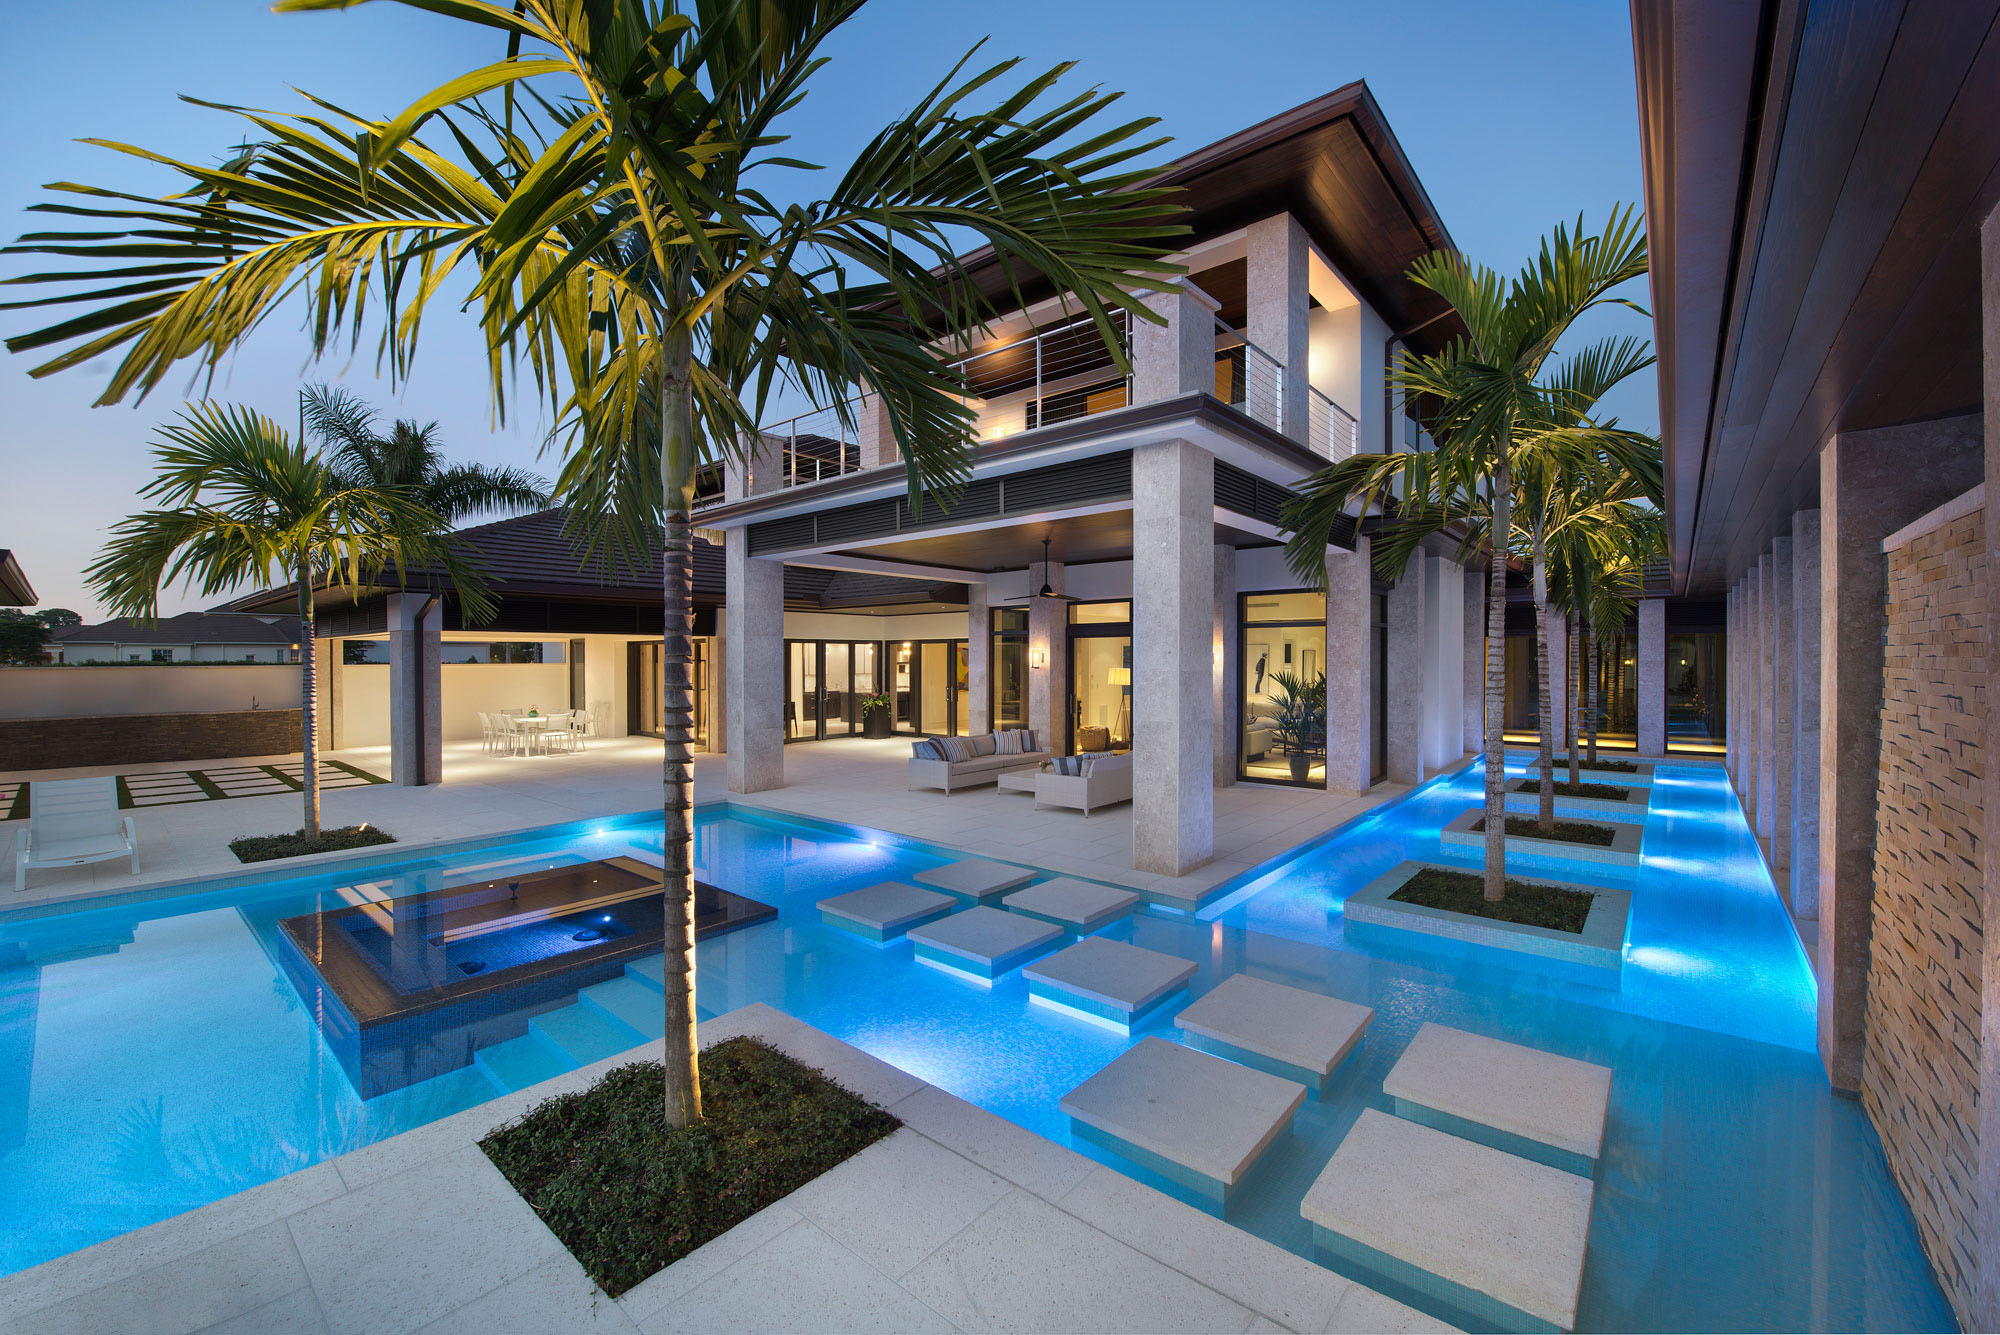 Custom dream home in florida with elegant swimming pool for Pool designs florida